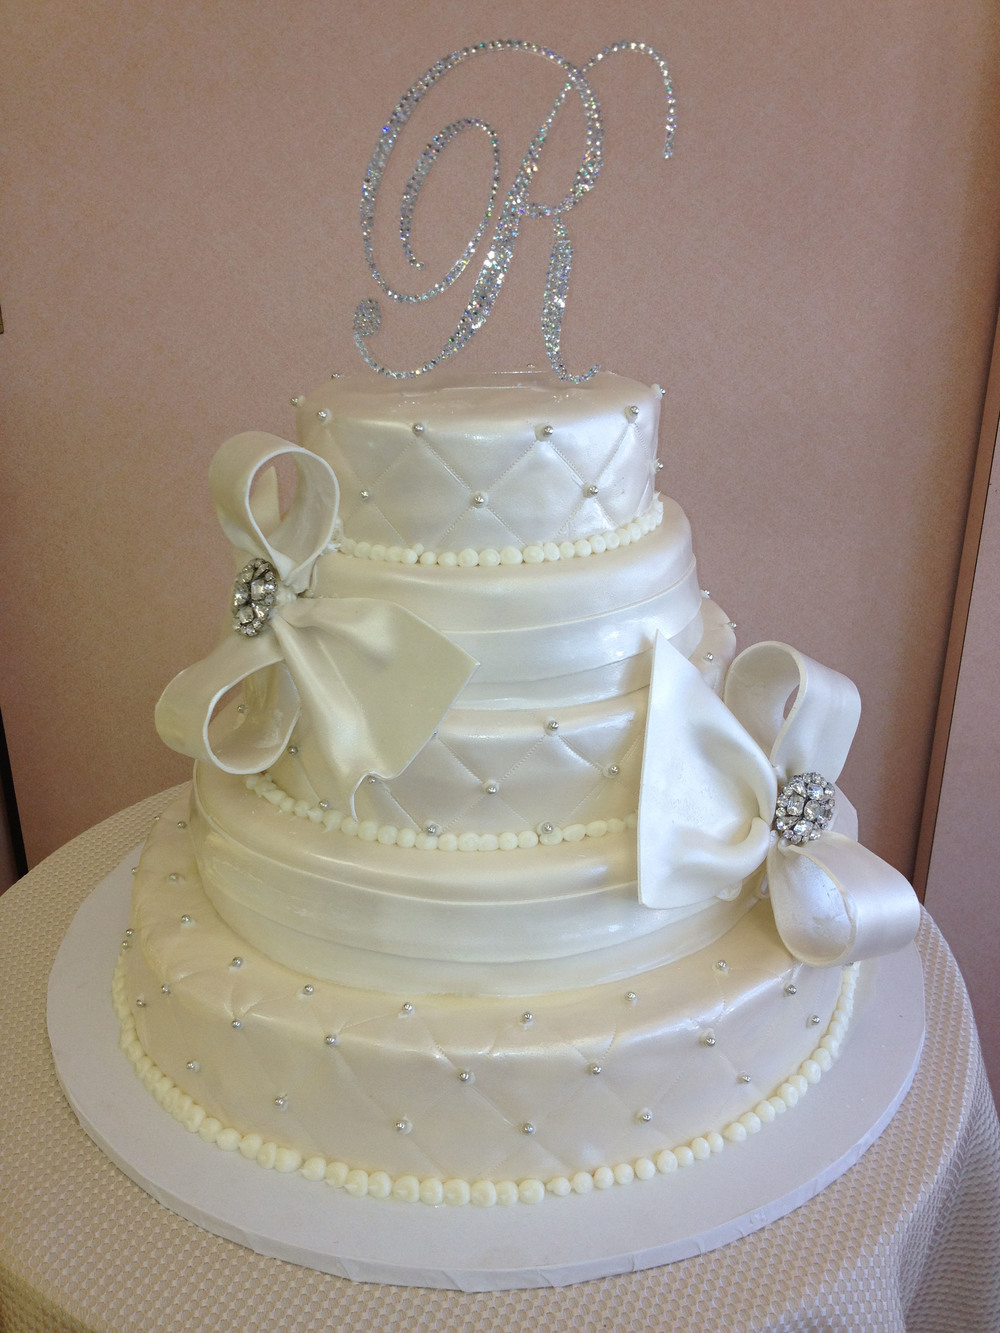 Ivory Rolled Fondant with Rolled Fondant Bows & Ribbons, Quilted & Pearlized